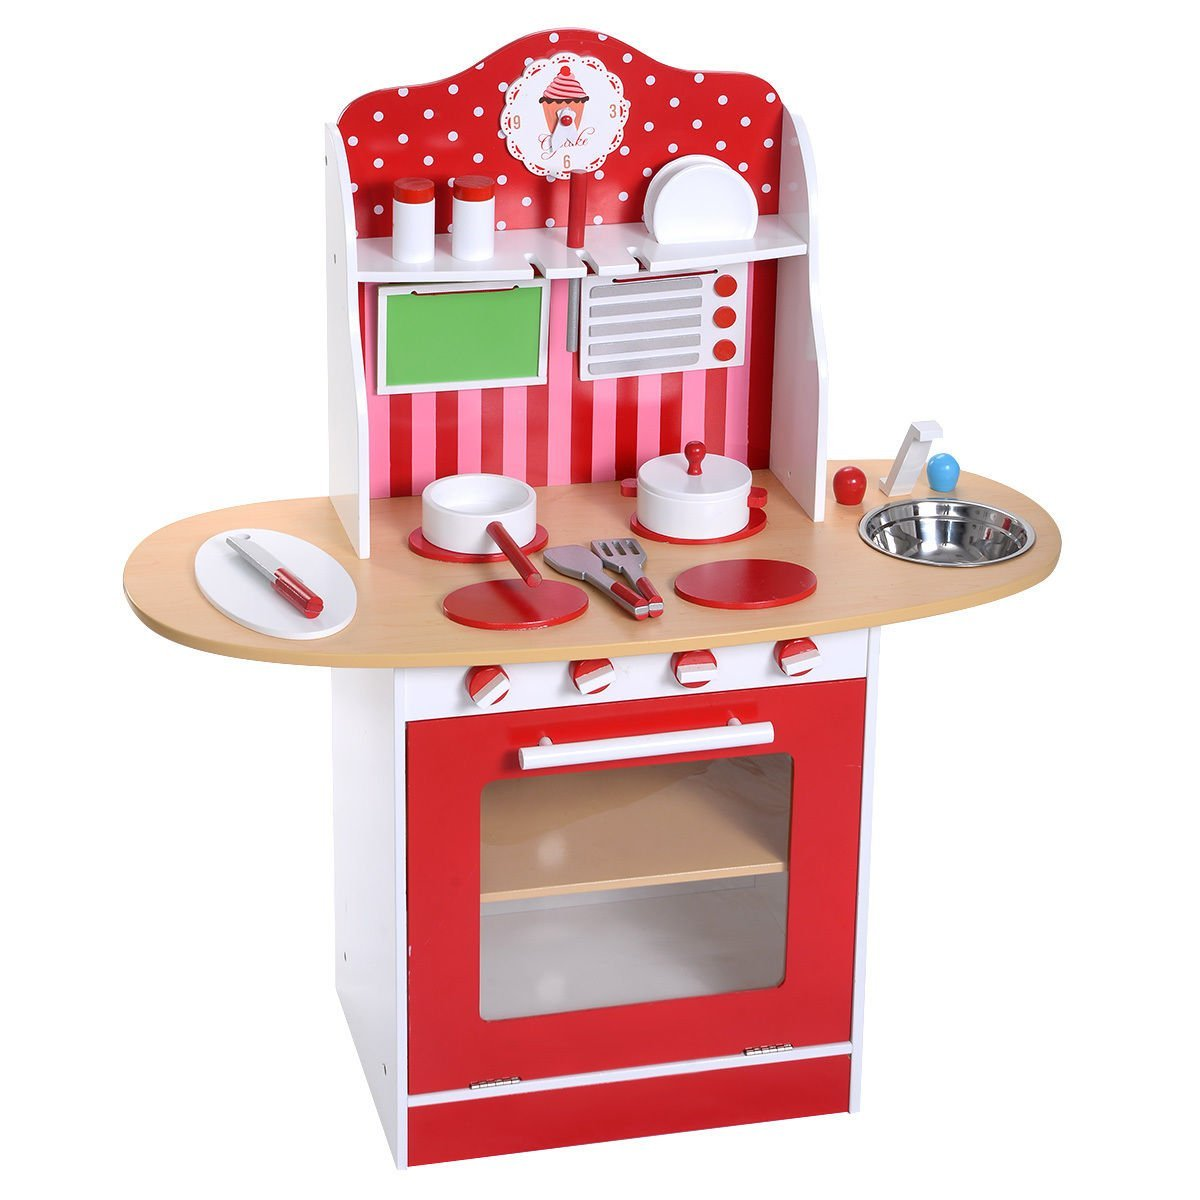 Get Quotations · Costzon New Kids Wood Kitchen Toy Cooking Pretend Play Set  Toddler Wooden Playset Gift